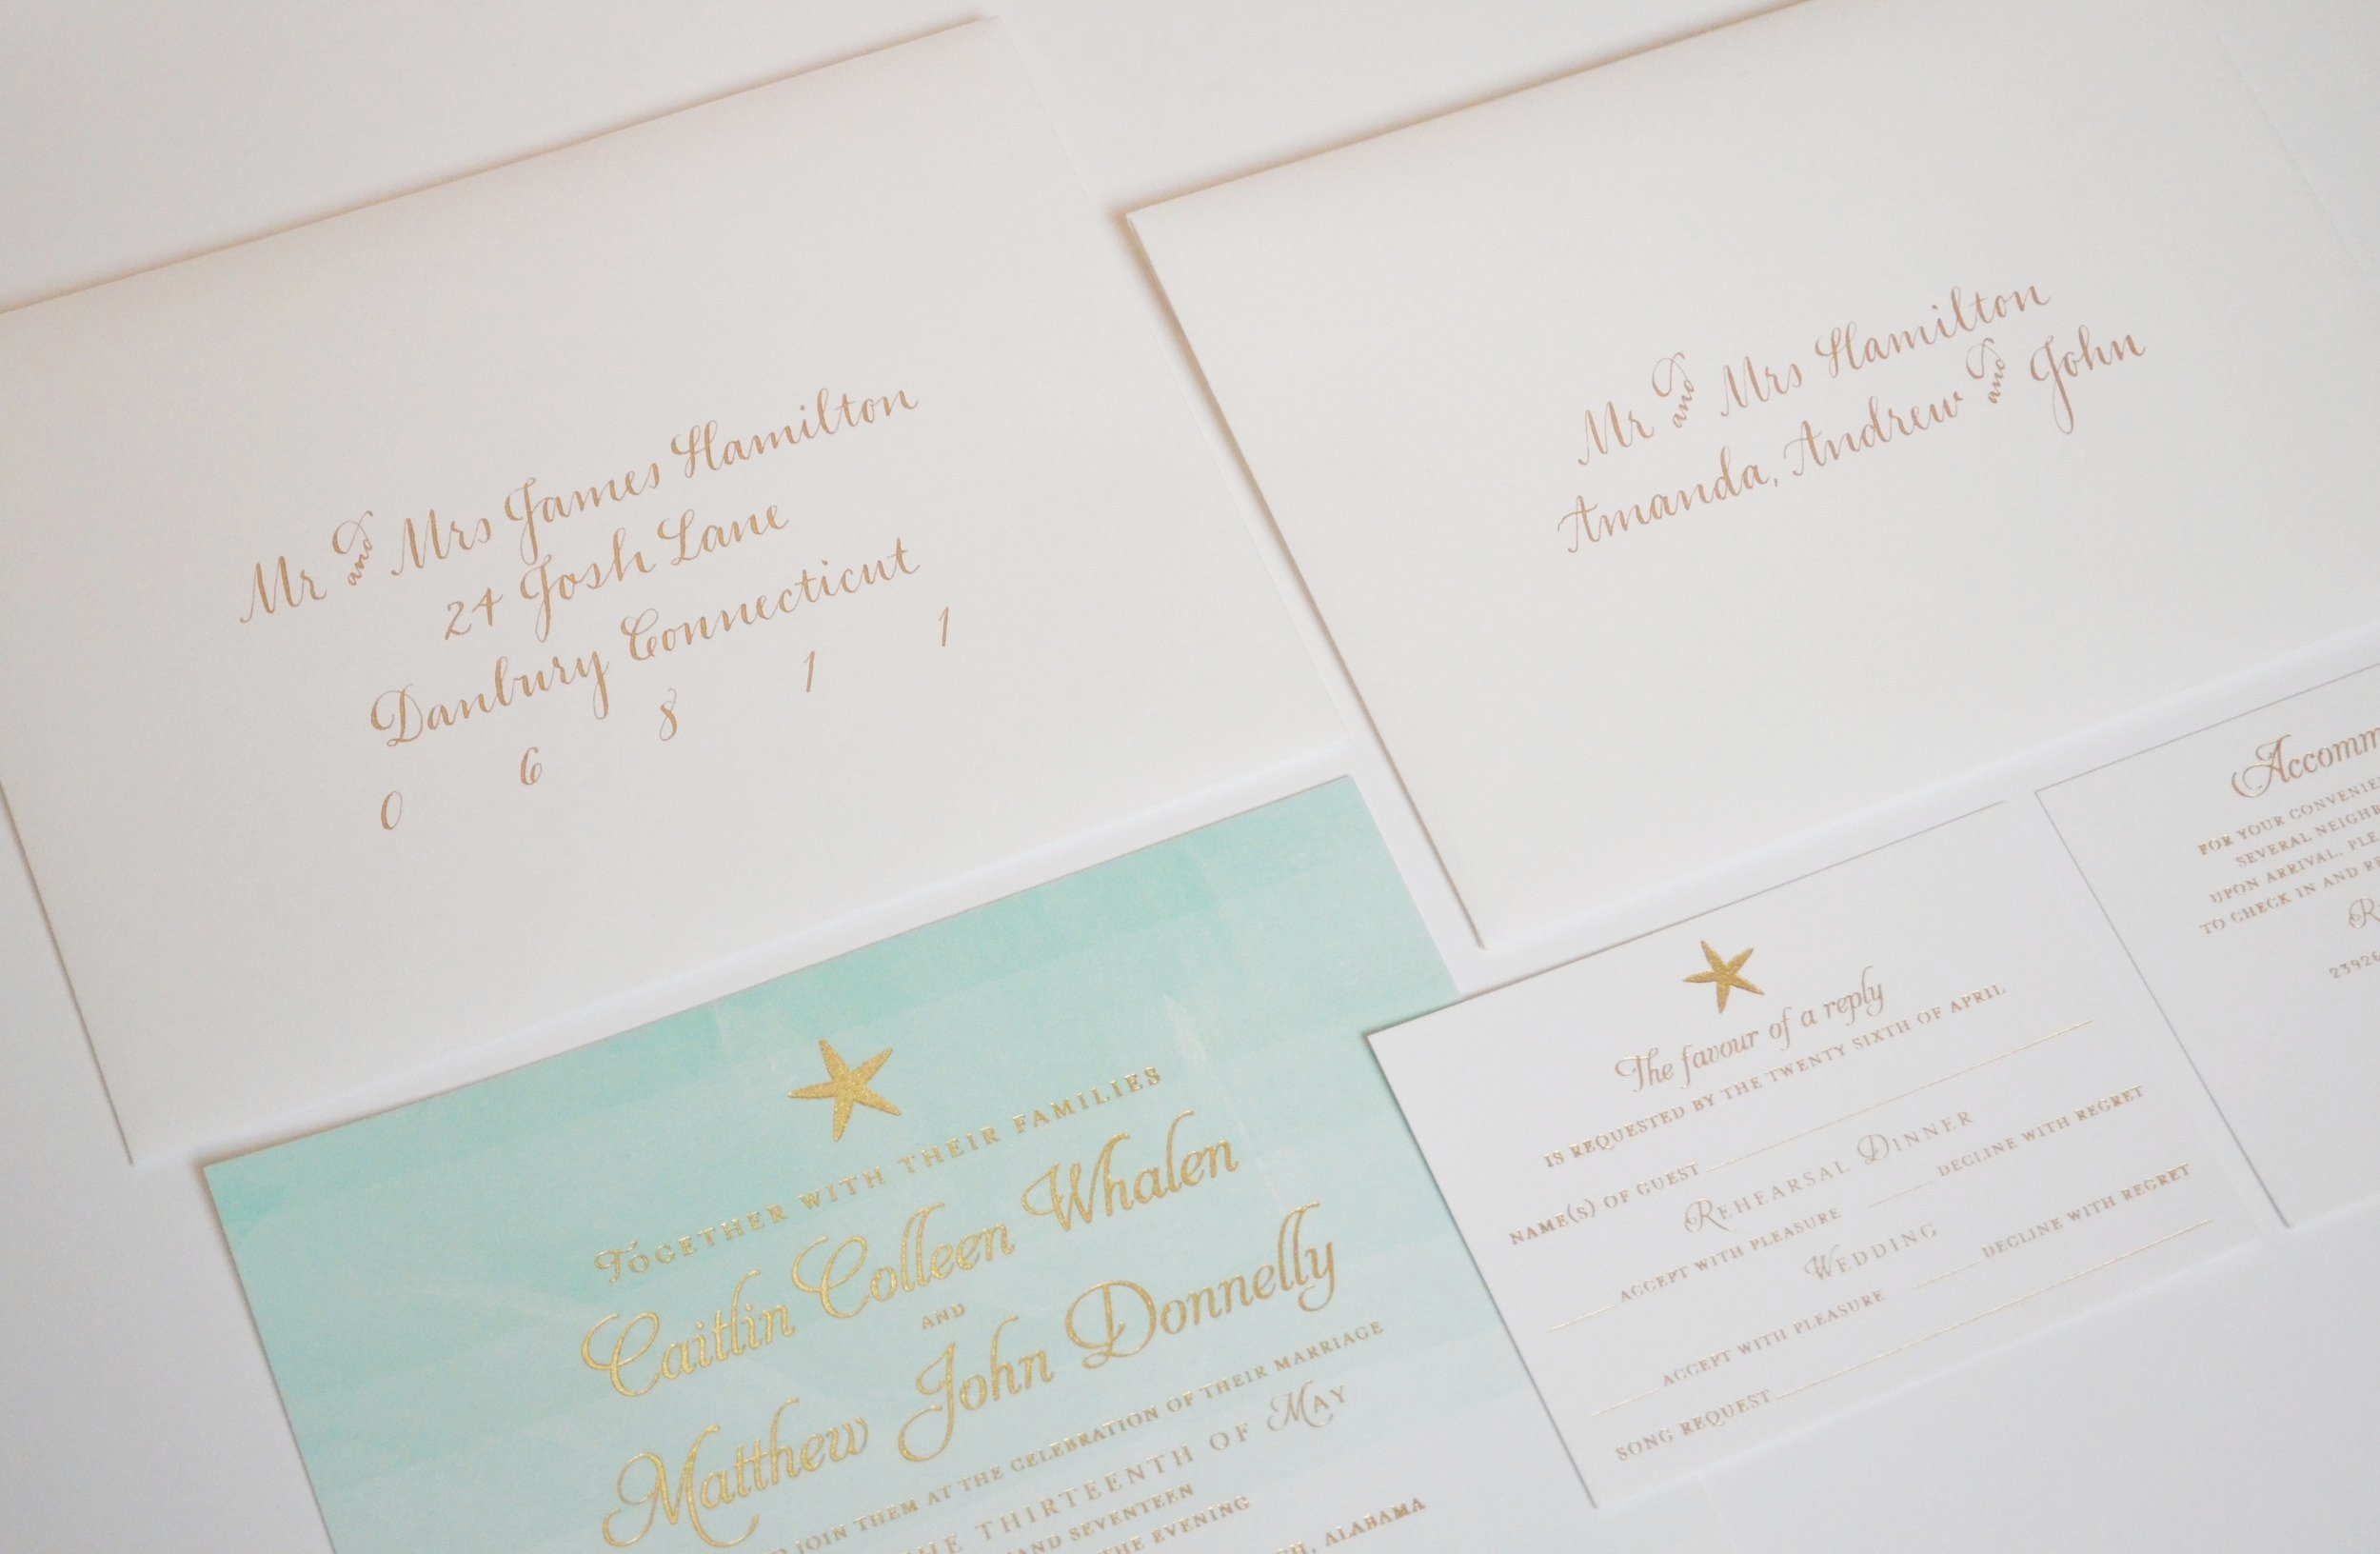 Addressing your wedding invitations jenna laine weddings inner and outer envelope addressing monicamarmolfo Images